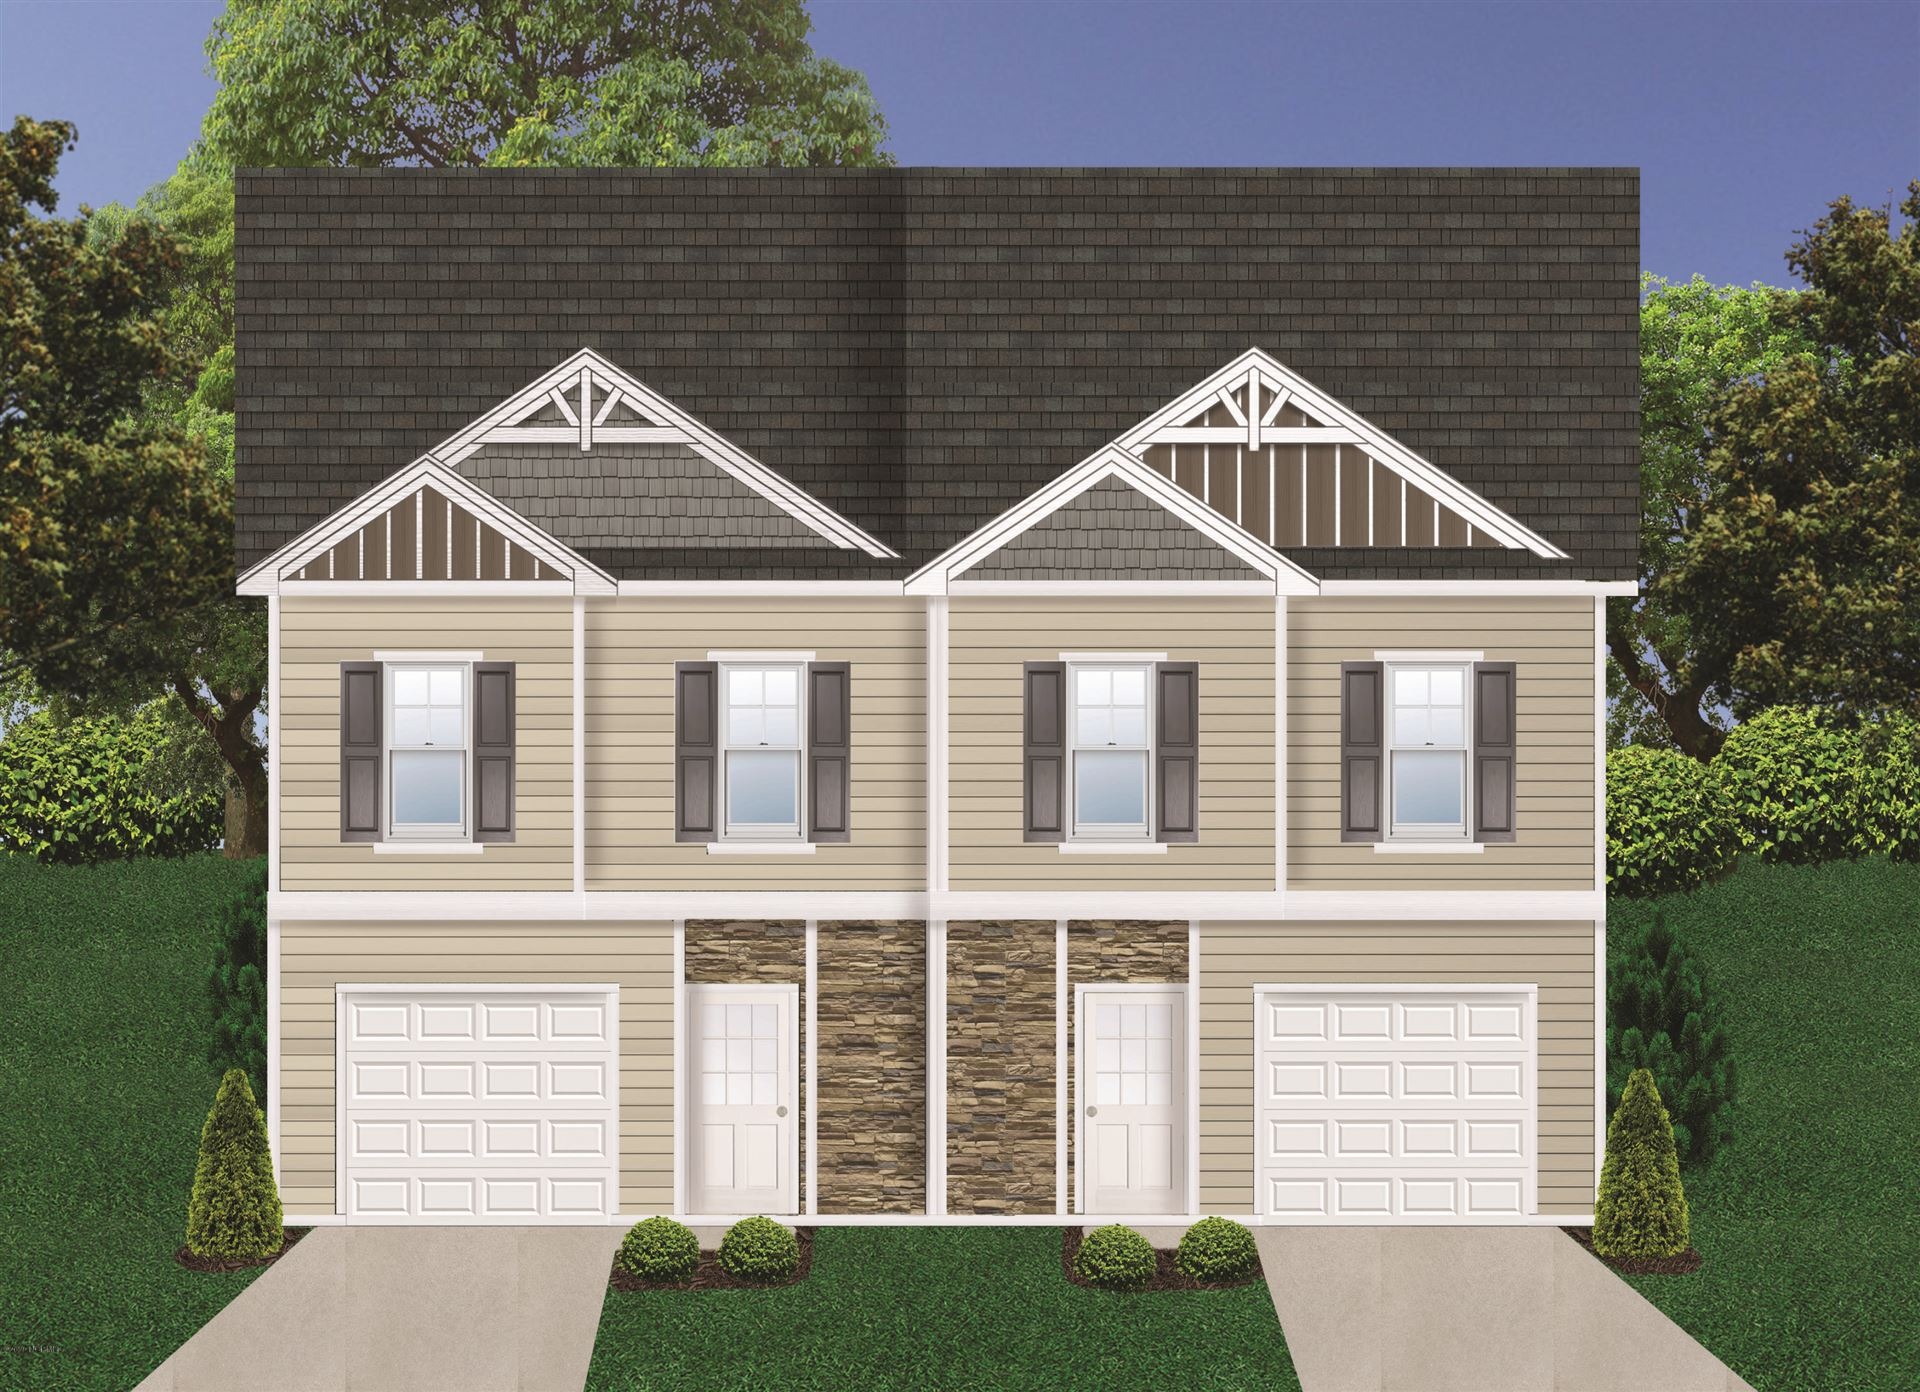 Photo for 414 Vandemere Court, Holly Ridge, NC 28445 (MLS # 100276379)